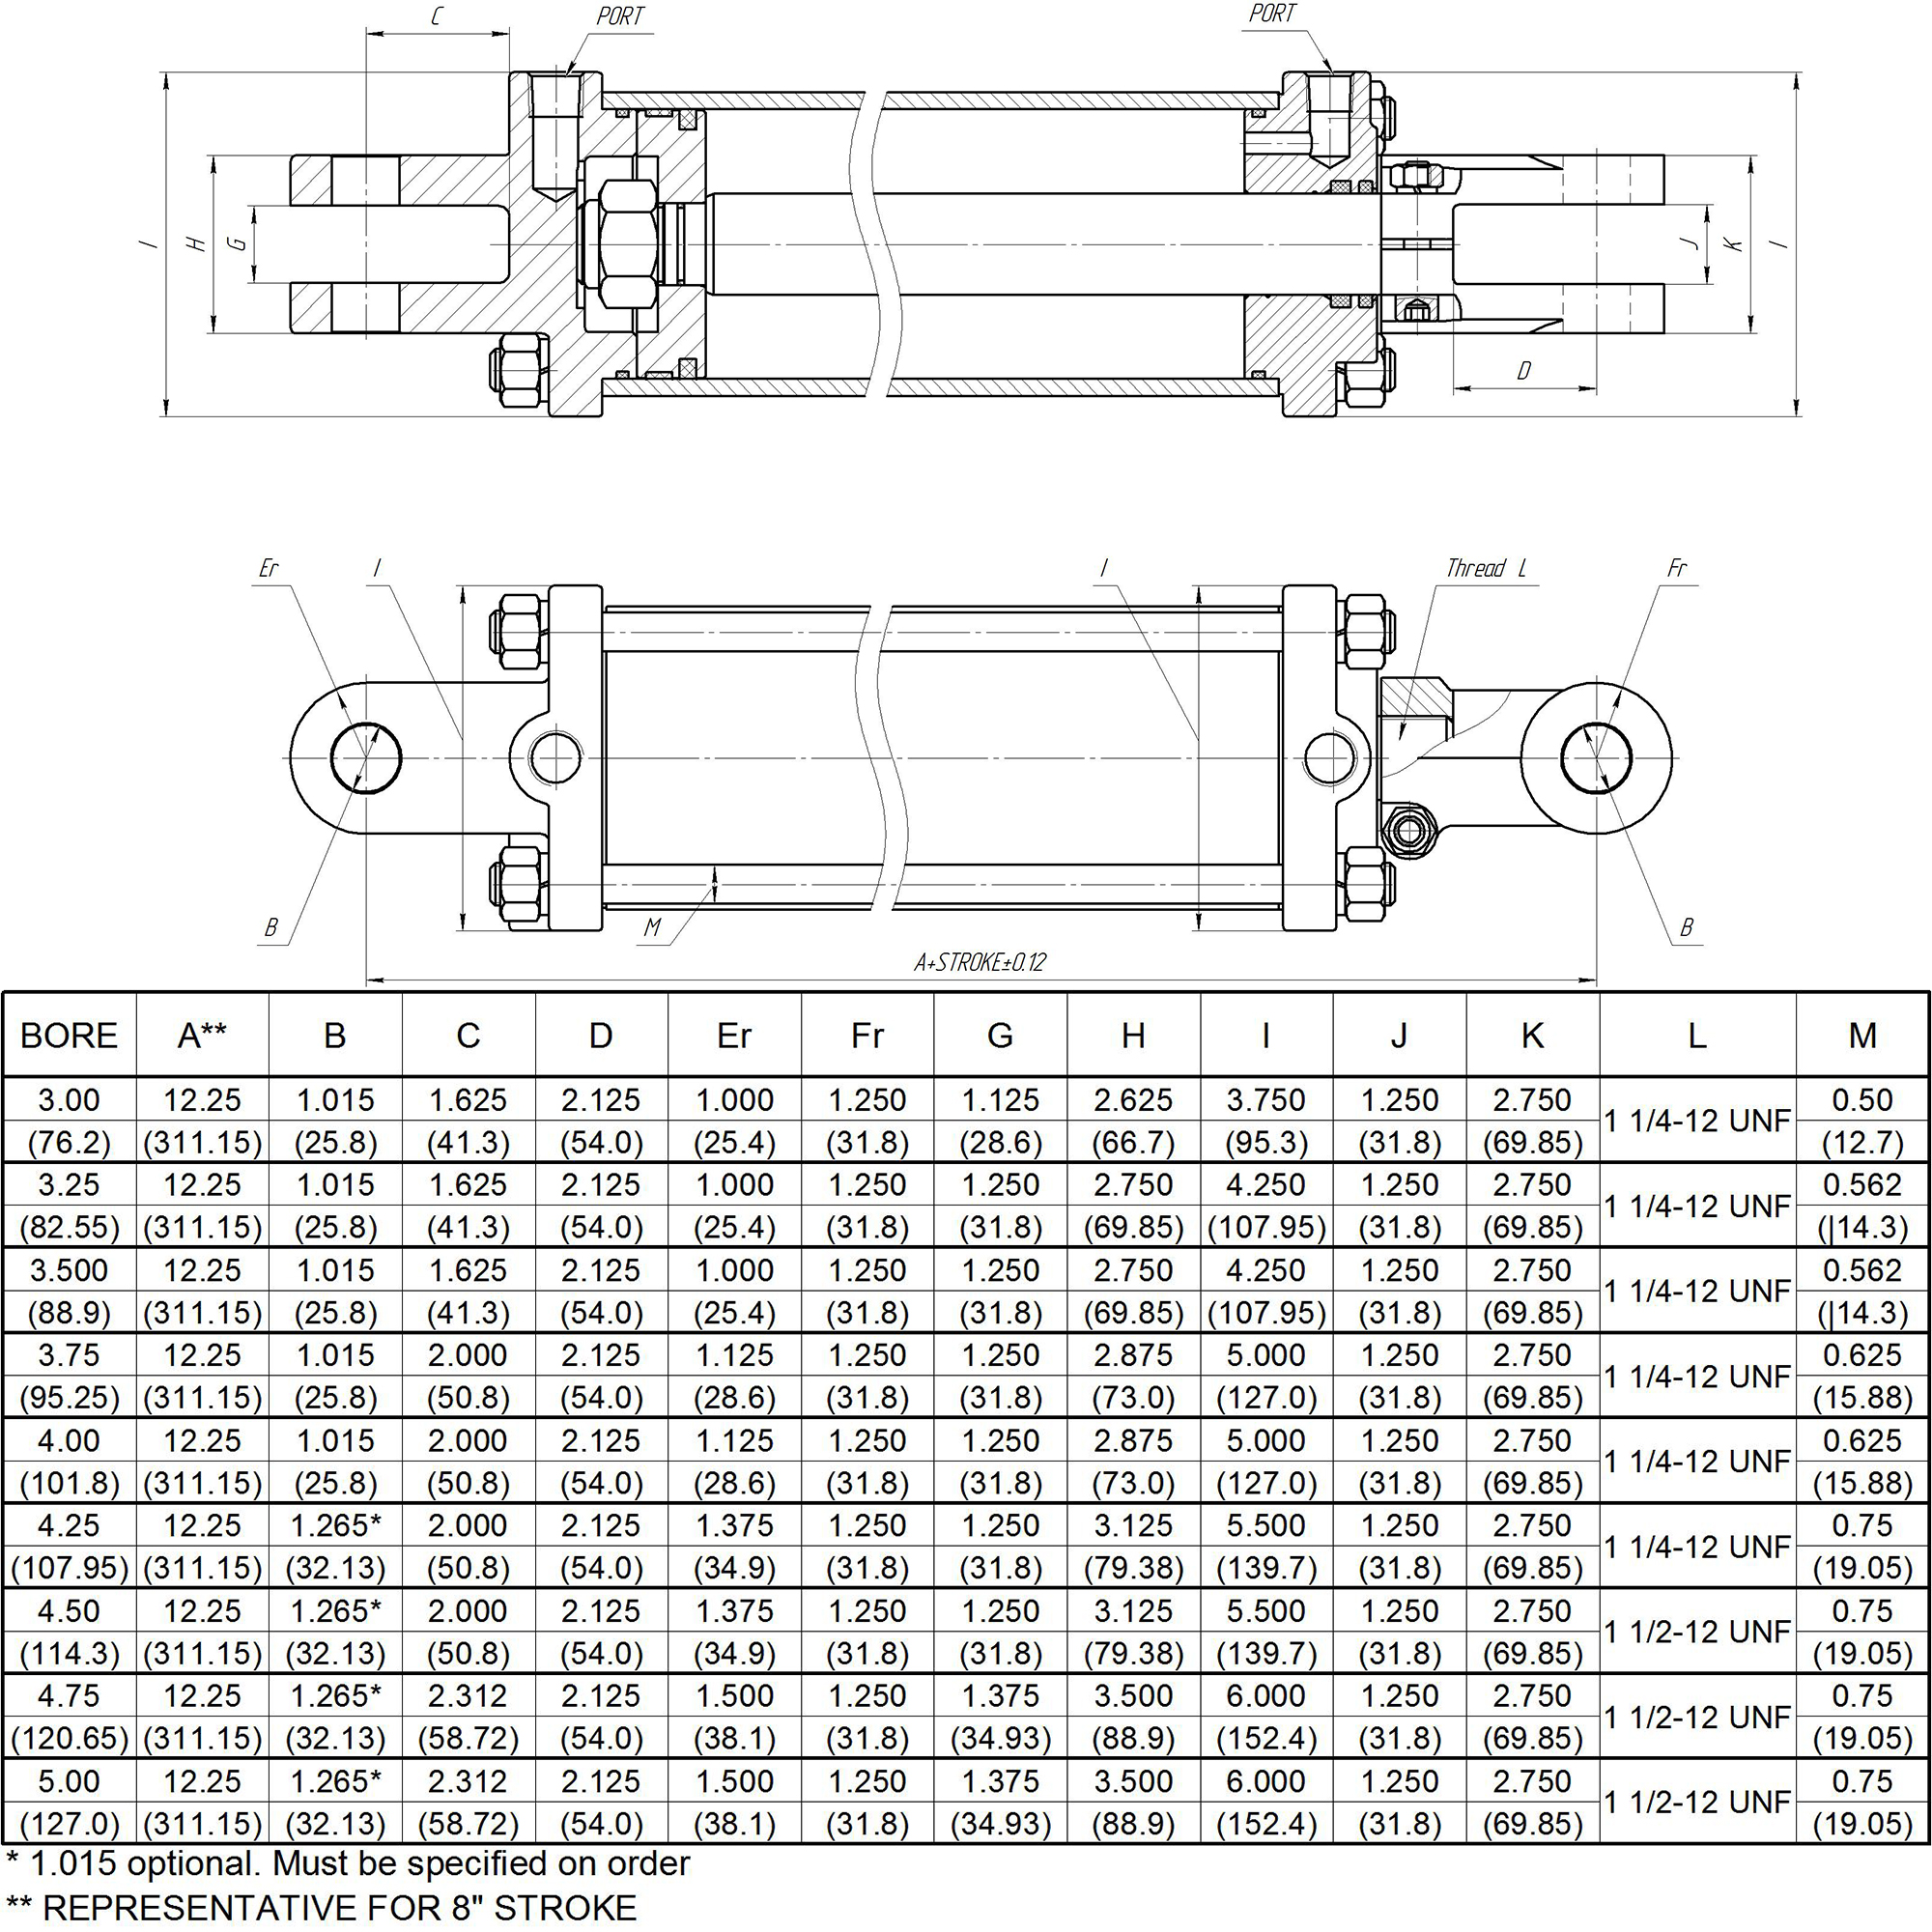 3.25 bore x 8 stroke CROSS rephasing hydraulic cylinder, tie rod double acting cylinder DR series   CROSS MANUFACTURING